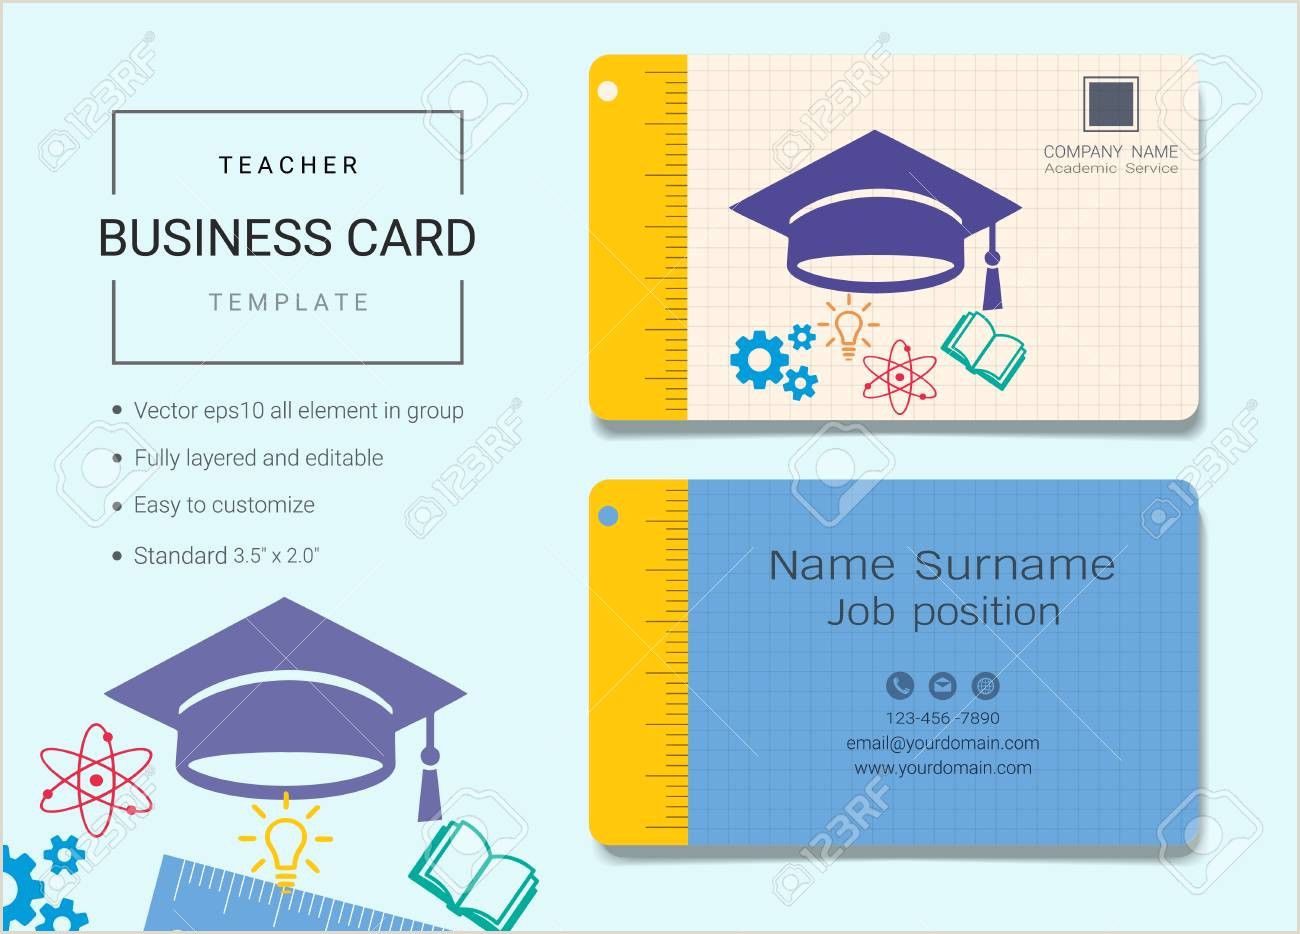 Music Business Cards Templates Free Teacher Business Card or Name Card Template Simple Style Also